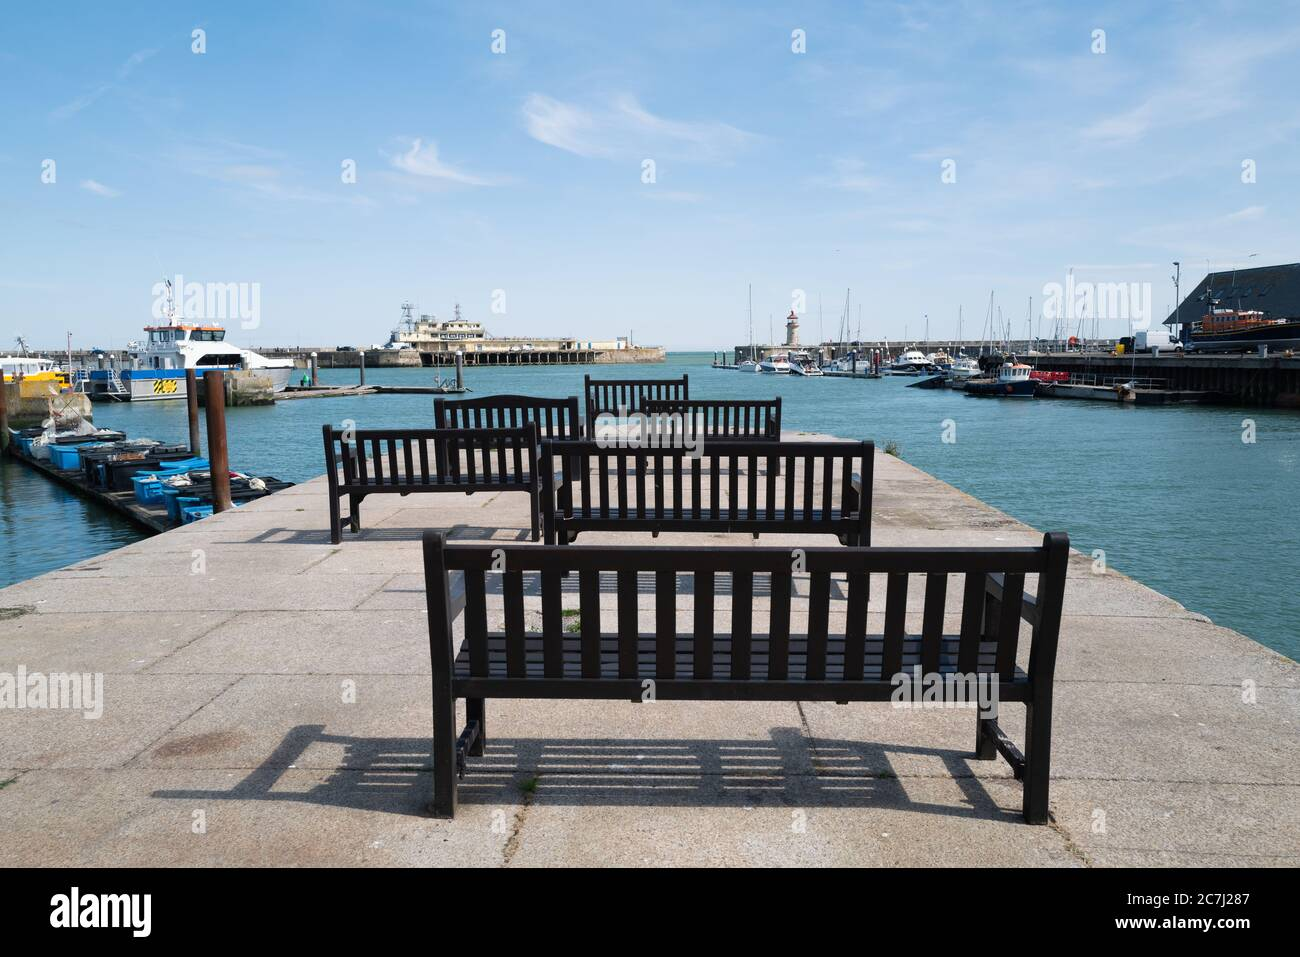 Wooden benches in the Royal Harbour, Ramsgate, looking out towards the lighthouse and an end of pier restaurant Stock Photo